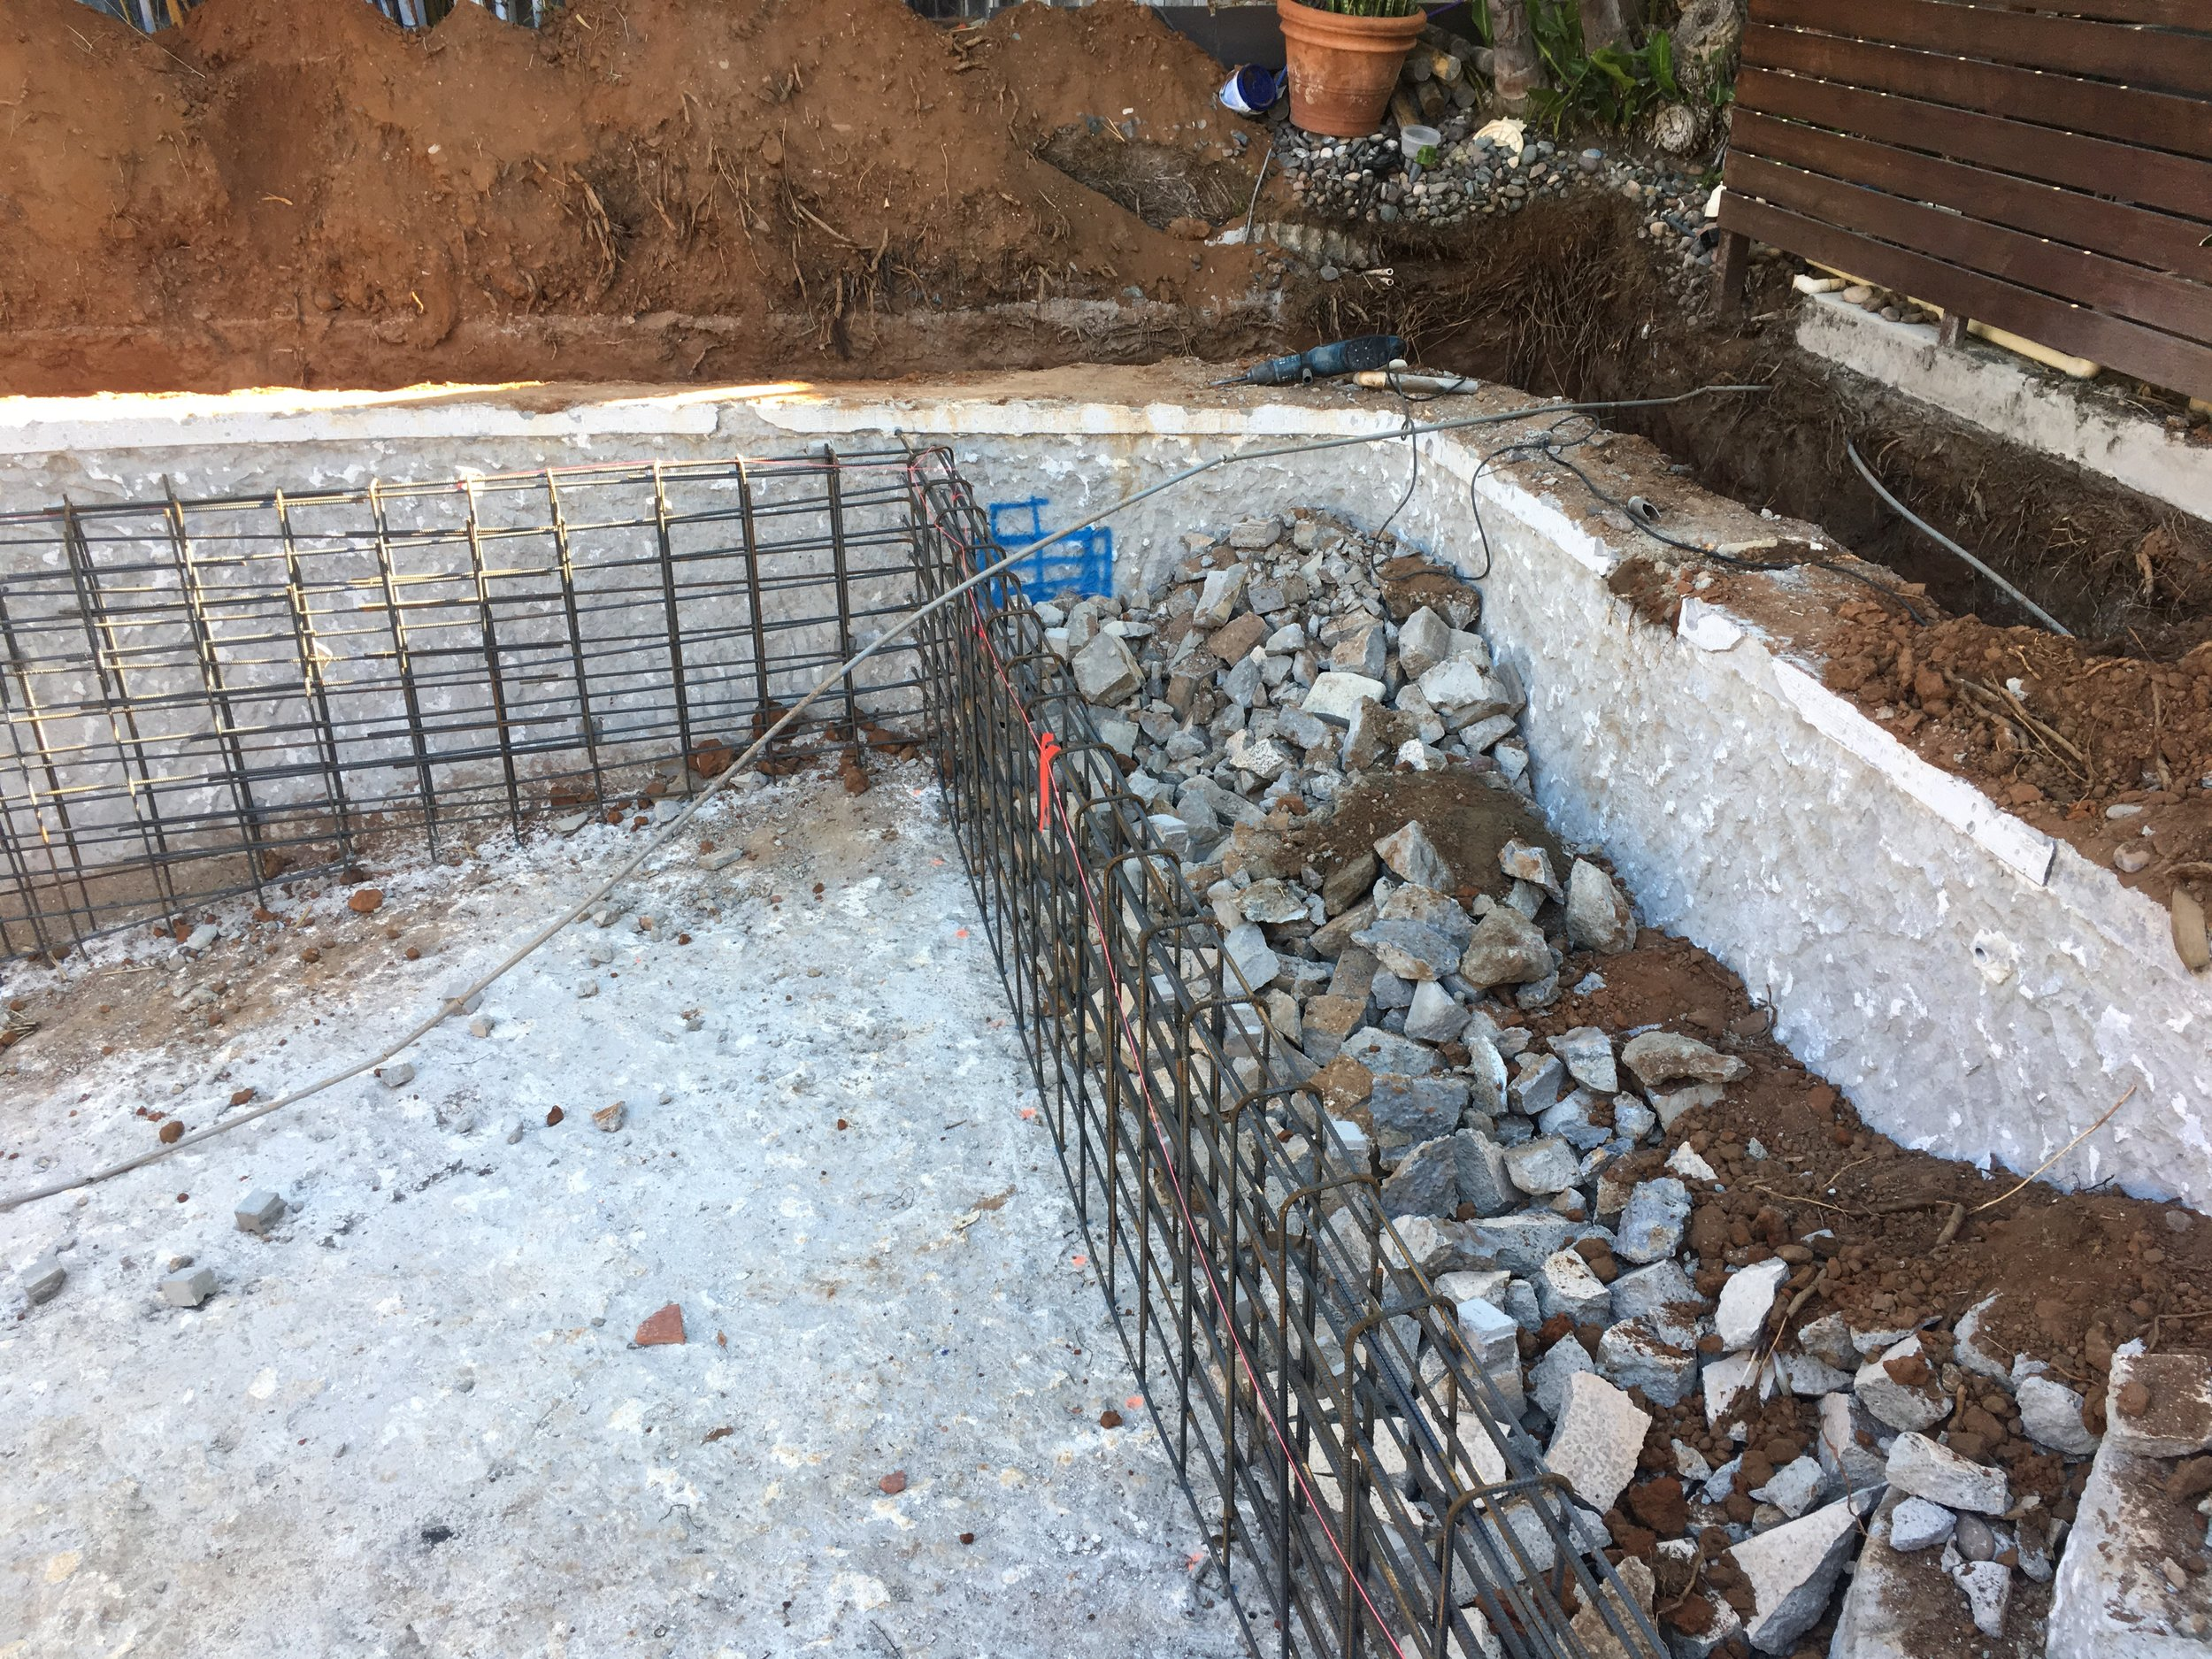 This is a picture standing on the other side of the pool looking towards the back fence. The rebar framing will get filled with concrete, creating the new edge of the pool, and the area in between these new walls and the existing walls will get filled with dirt and rock.